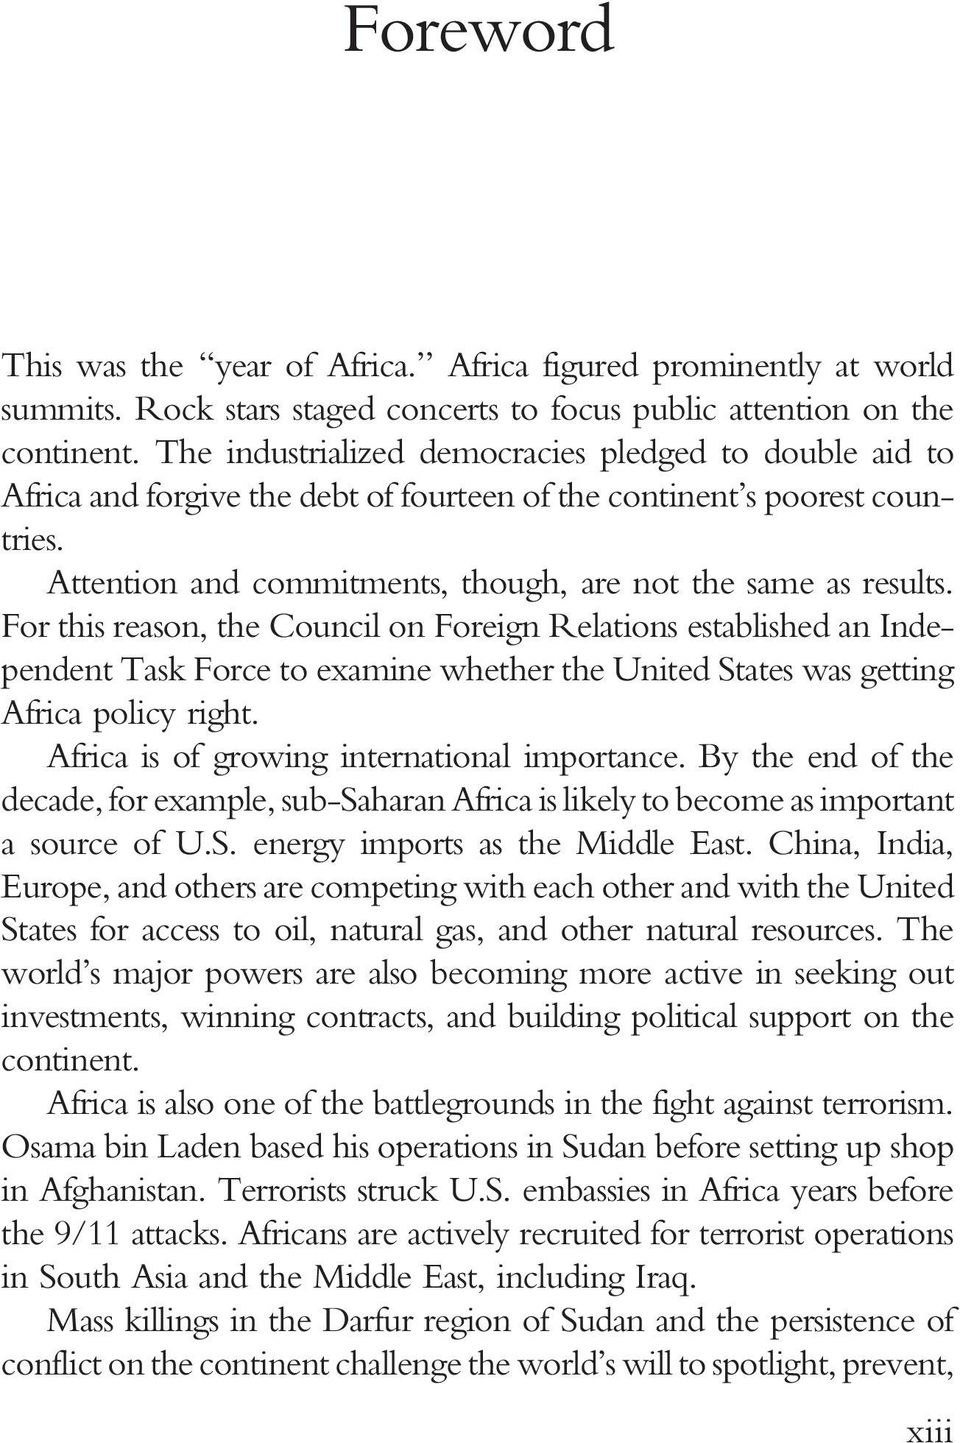 For this reason, the Council on Foreign Relations established an Independent Task Force to examine whether the United States was getting Africa policy right.